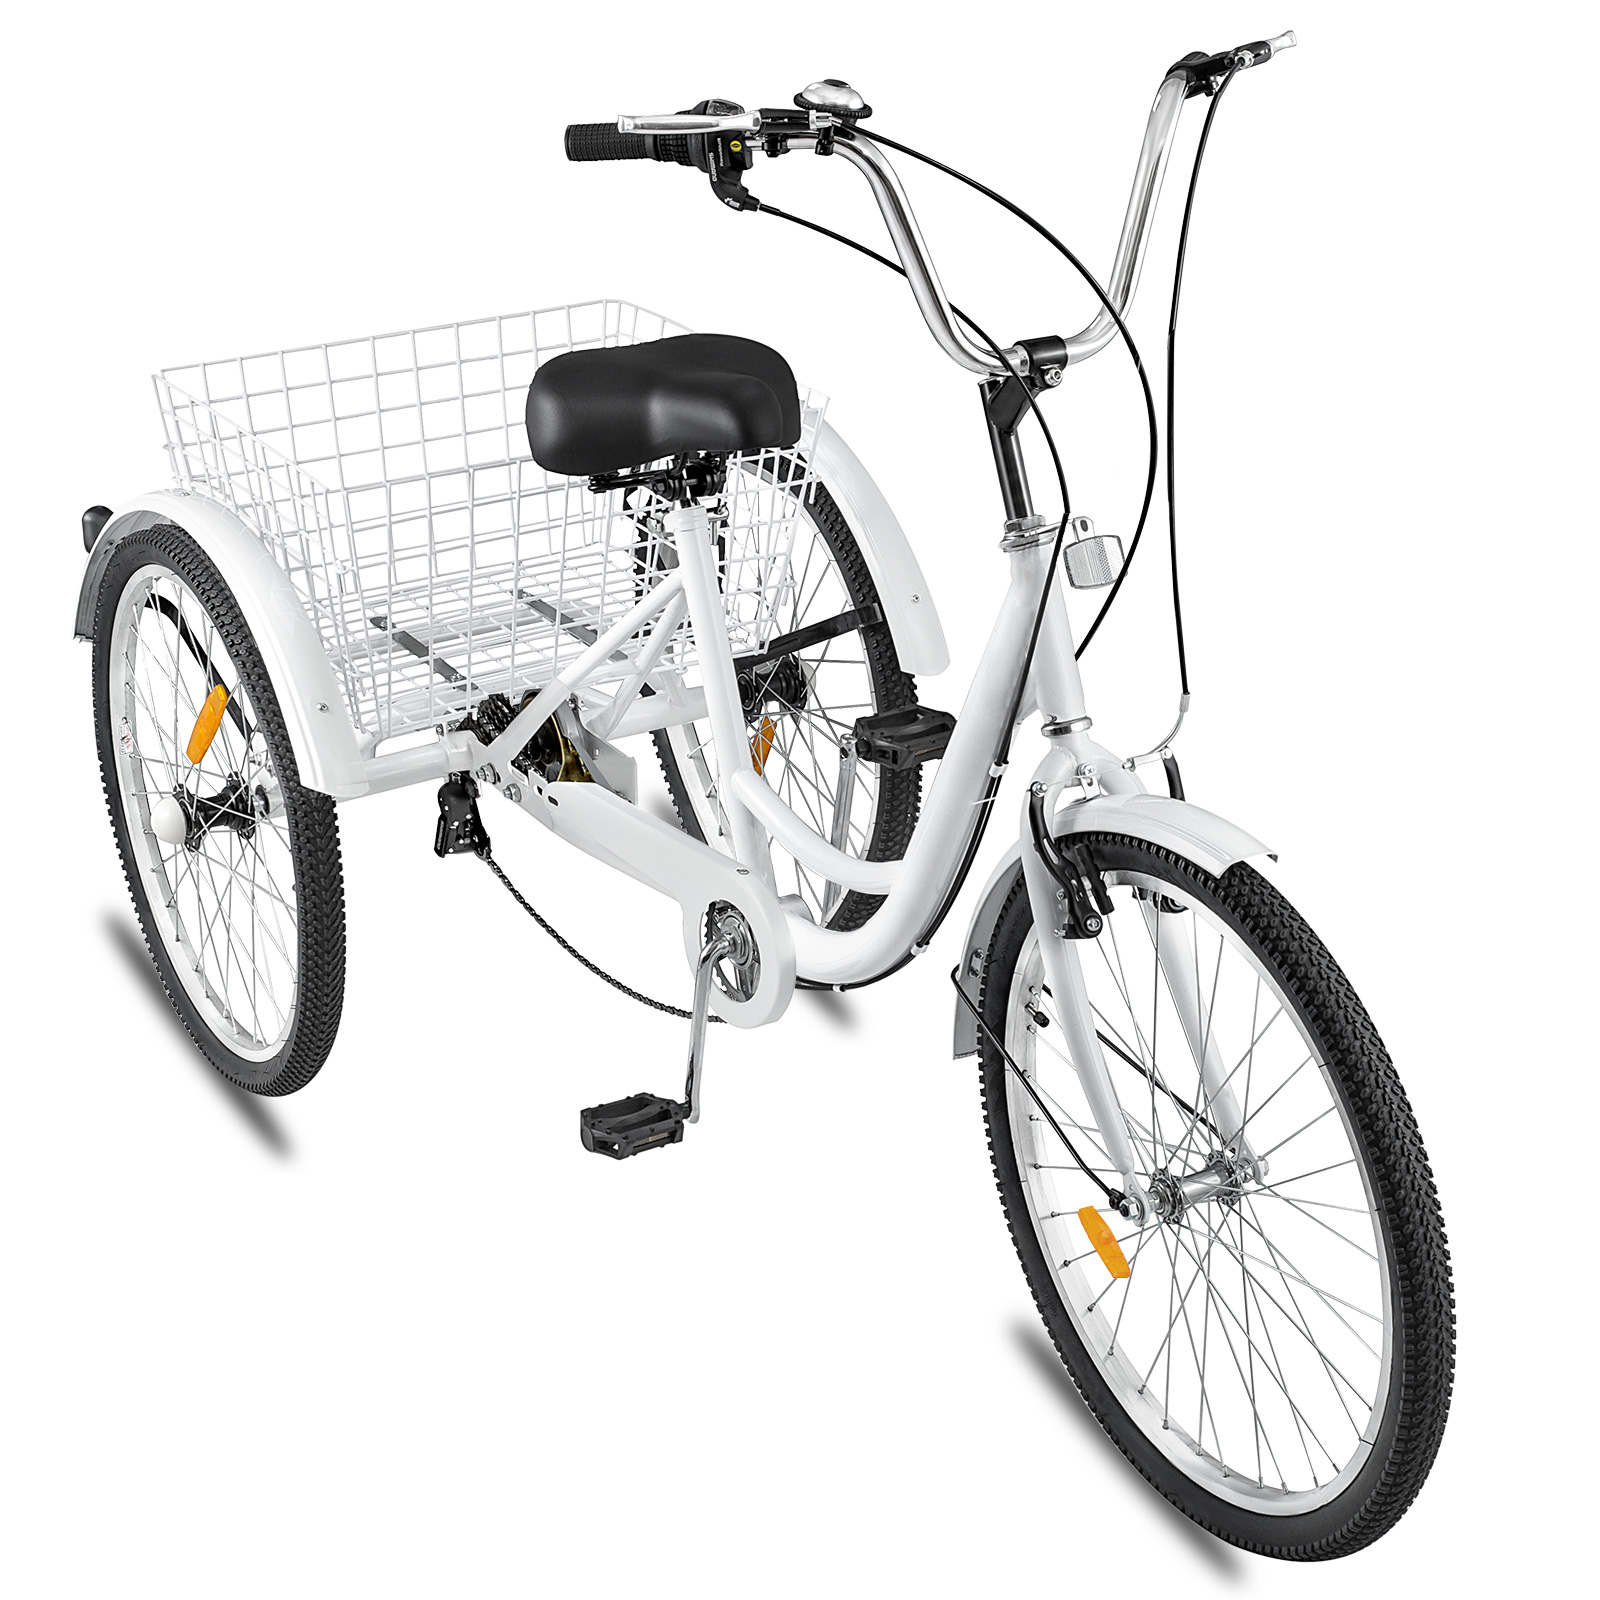 20-24-26-034-Adult-Tricycle-1-7-Speed-3-Wheel-Large-Basket-For-Shopping-Optional thumbnail 237